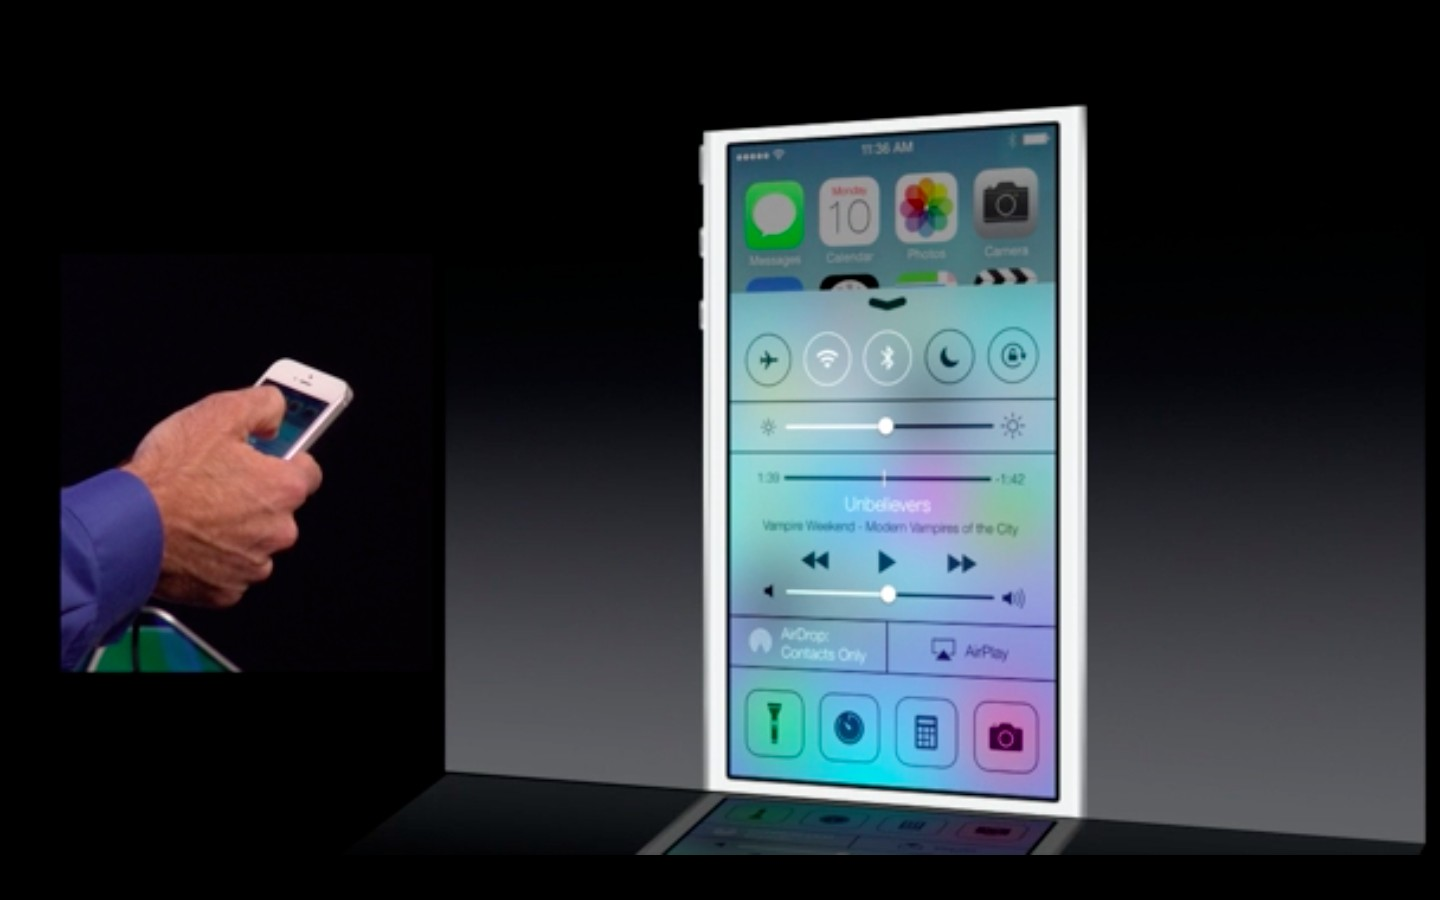 Apple: iOS 7 mit Multitasking und neuem Interface - Control Center unter iOS 7 (Bild: Apple/Screenshot: Golem.de)